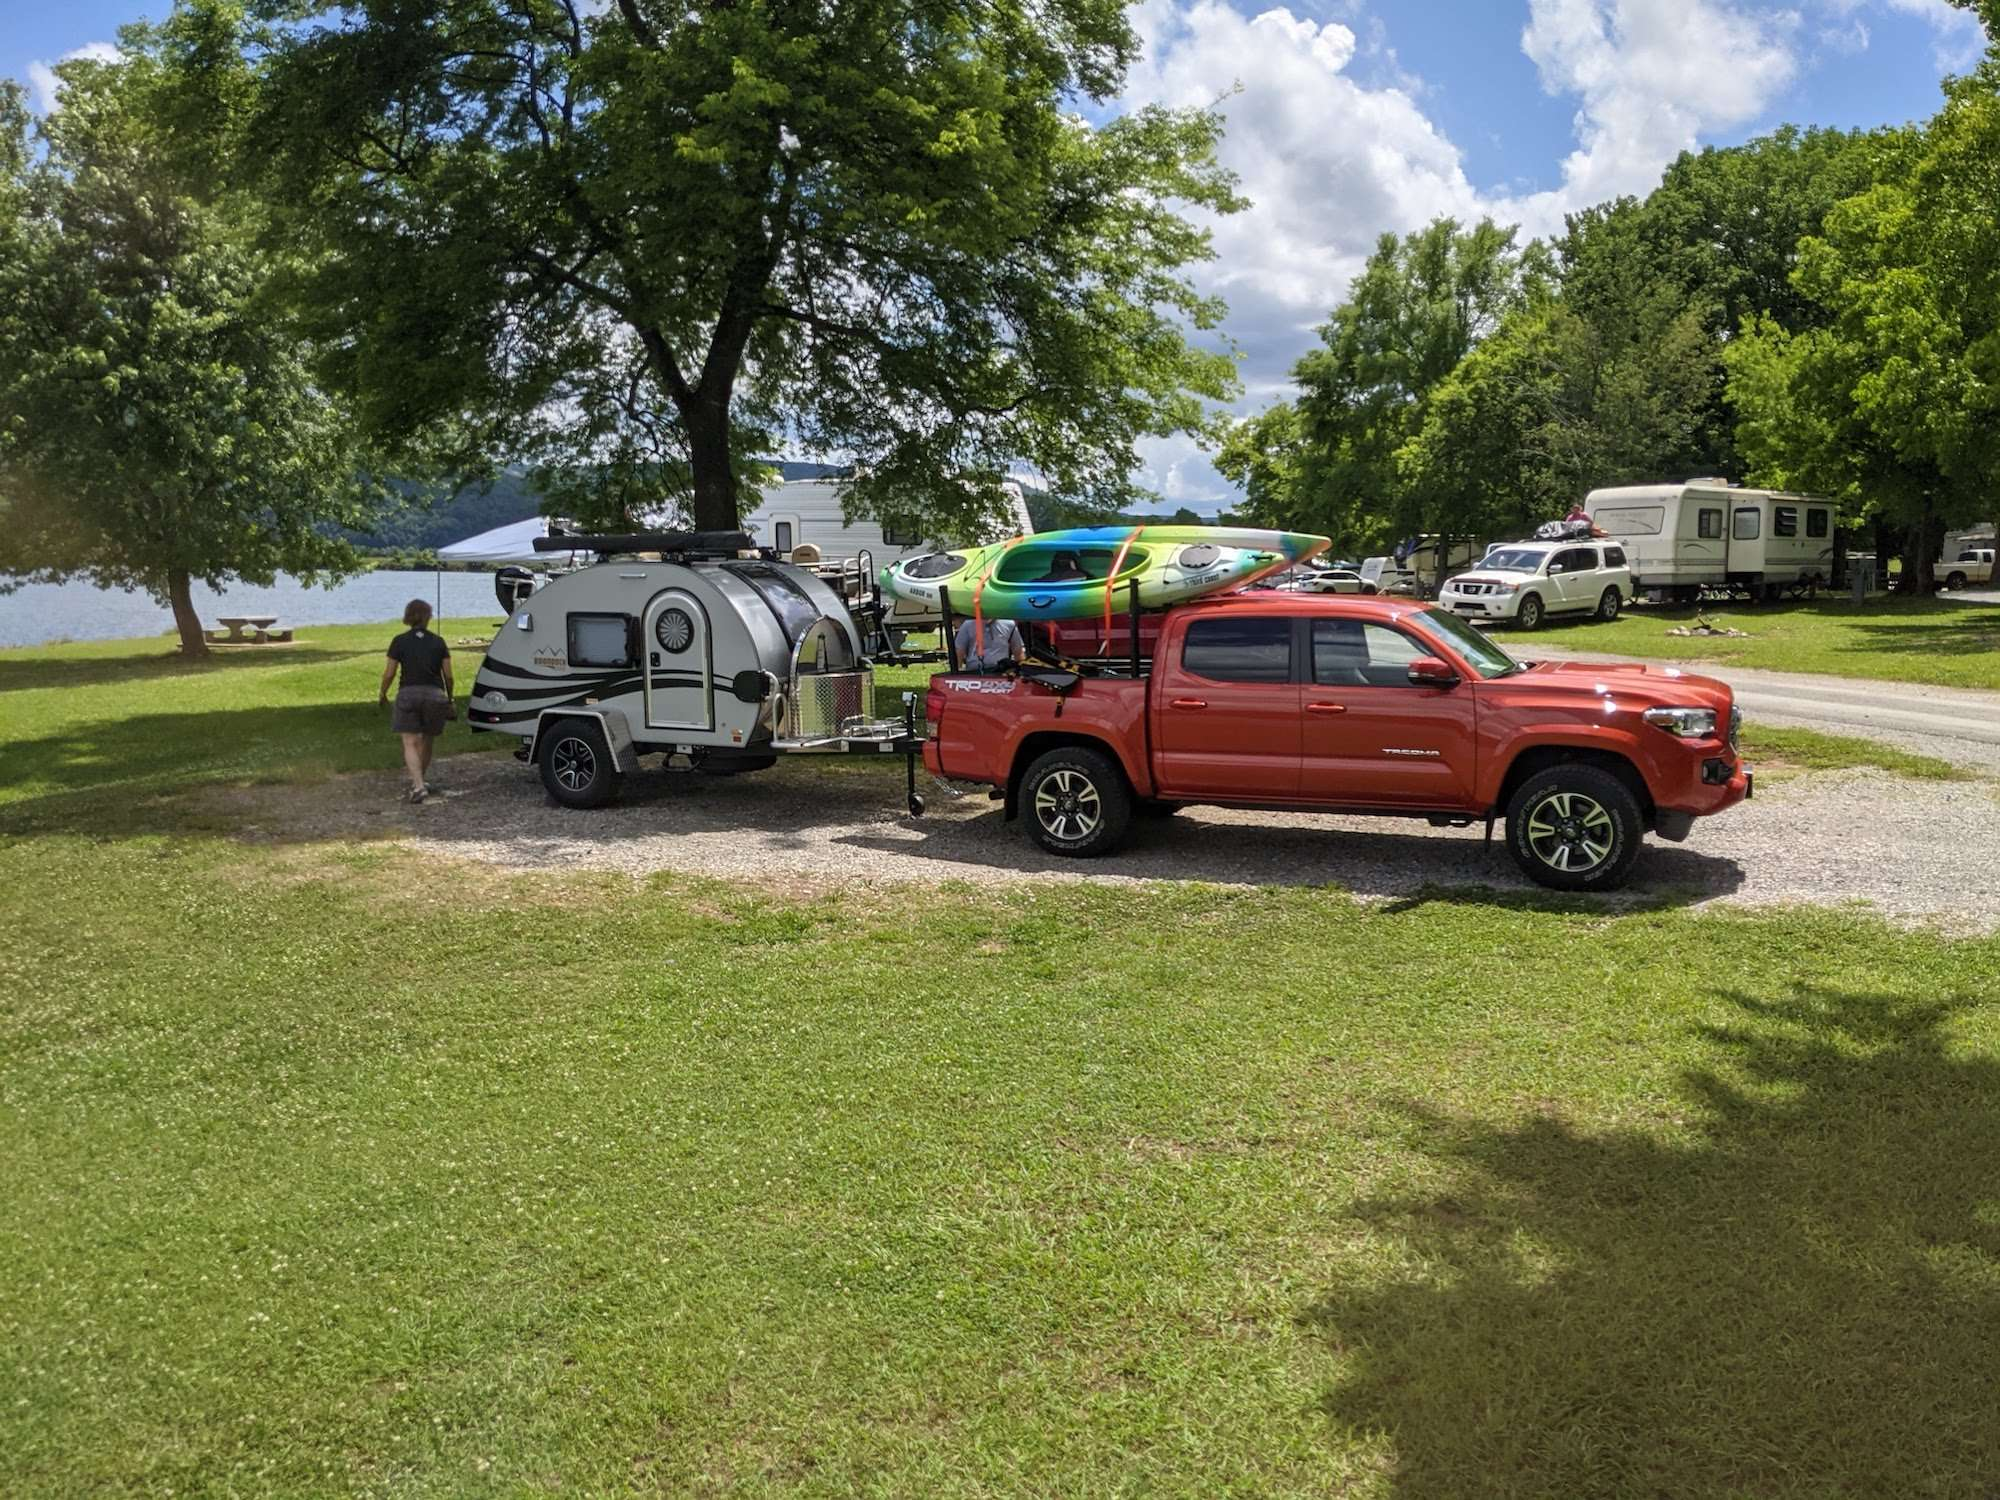 Small teardrop campers can be towed by a small truck or SUV.